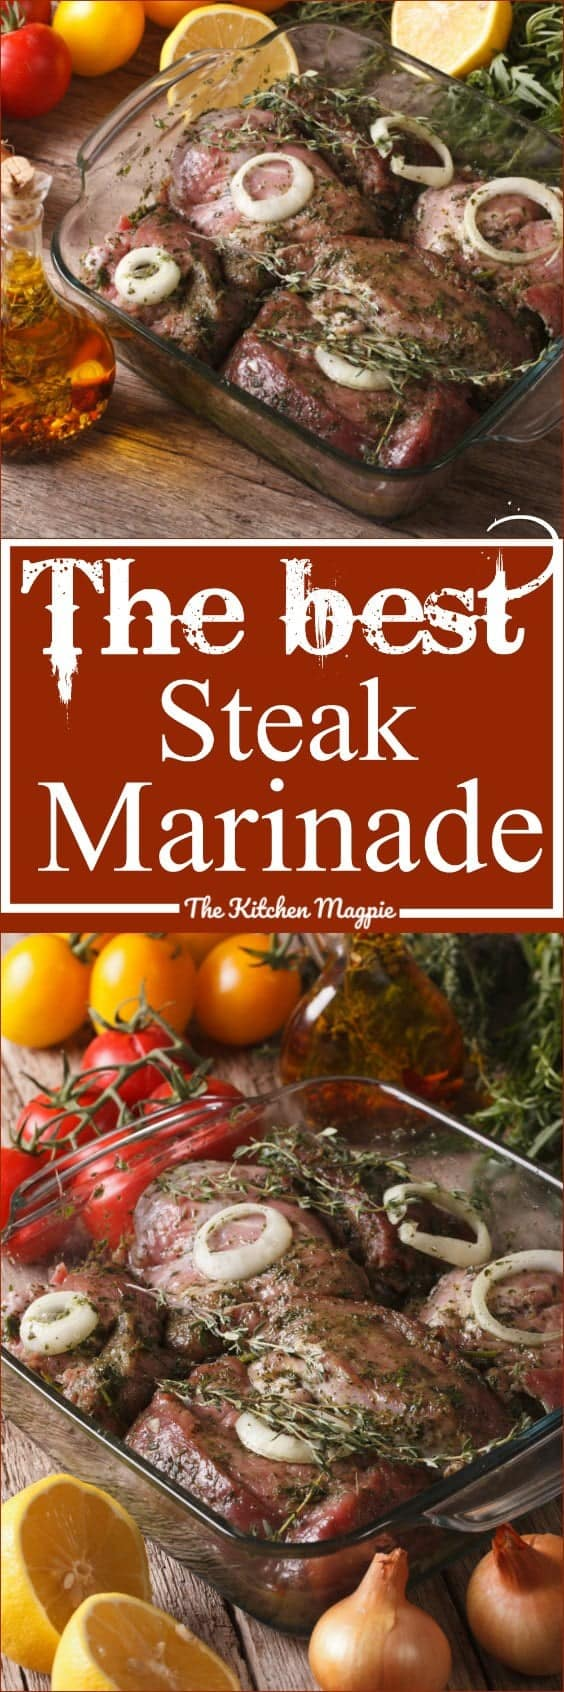 Steak Marinade Recipe! Easy and delicious! Simply mix it up and marinate your steaks overnight. Fire up the BBQ and you're set!